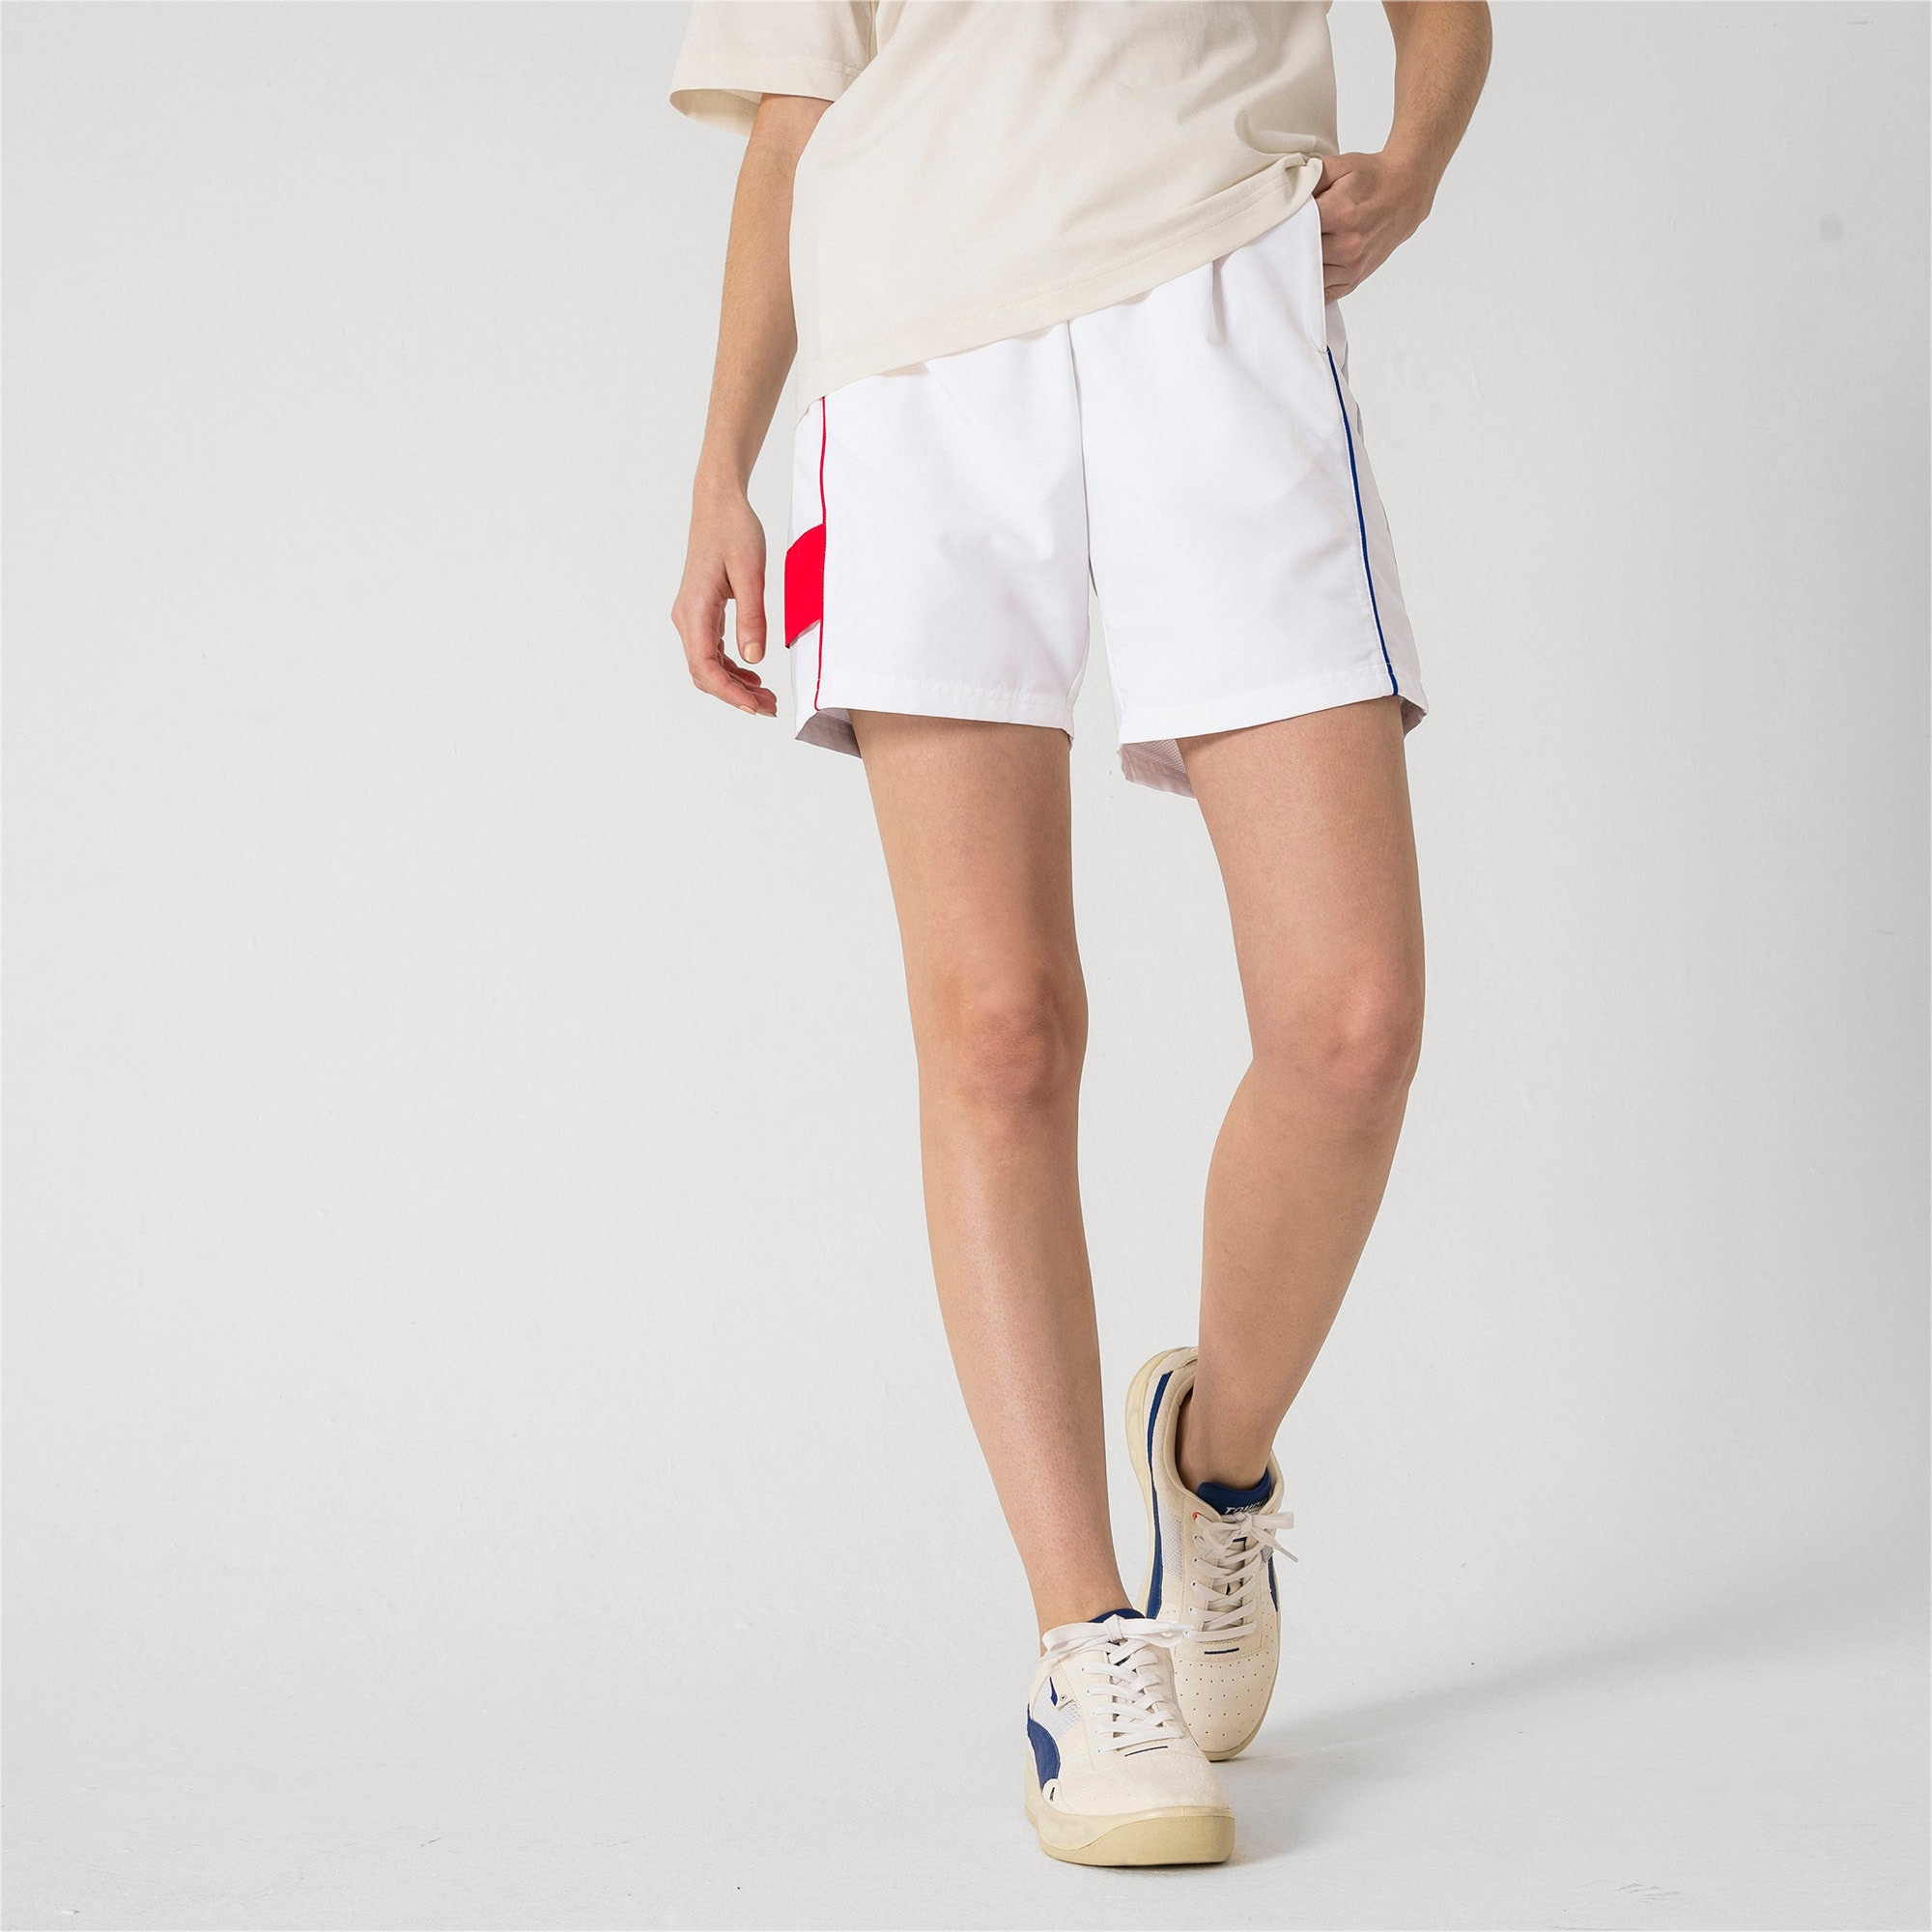 Thumbnail 6 of PUMA x ADER ERROR Shorts, Puma White, medium